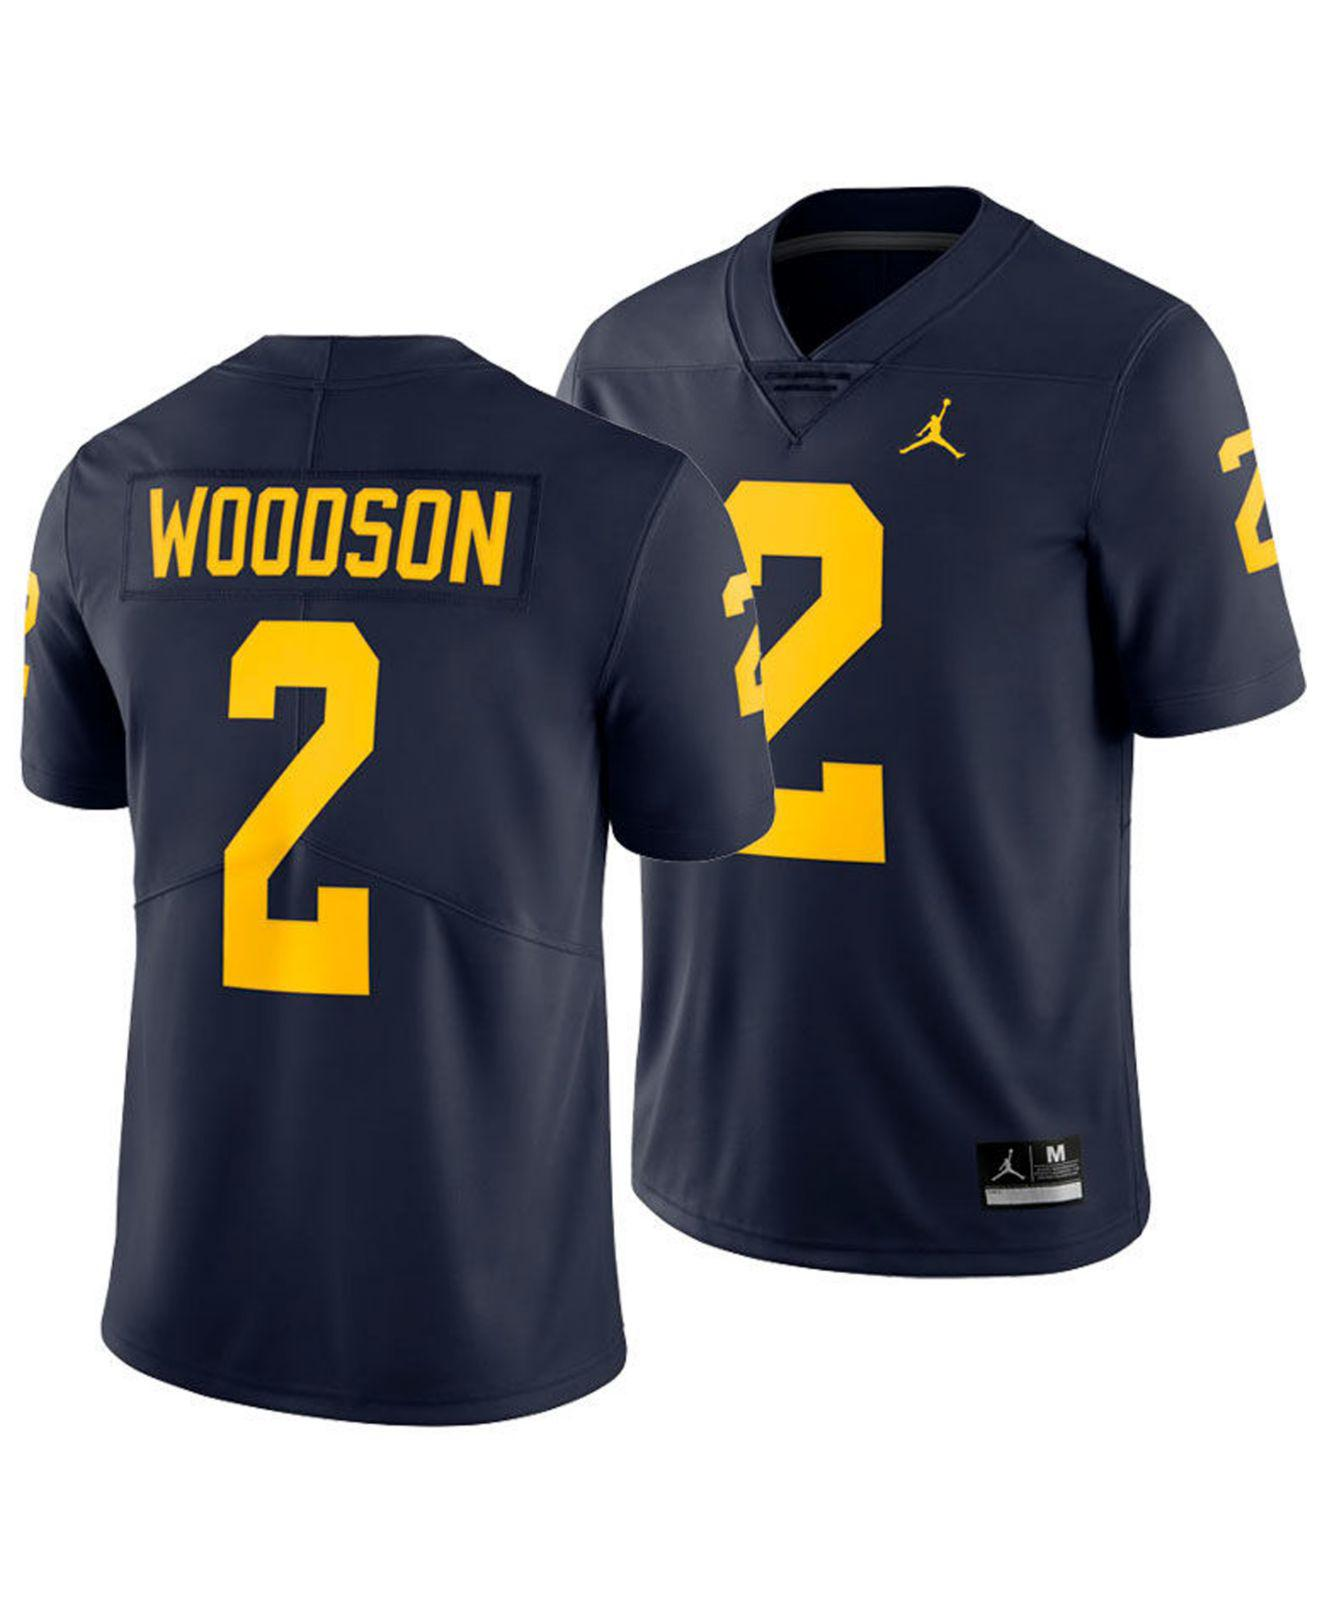 24bd77bce Nike. Men's Blue Charles Woodson Michigan Wolverines Limited Football Jersey